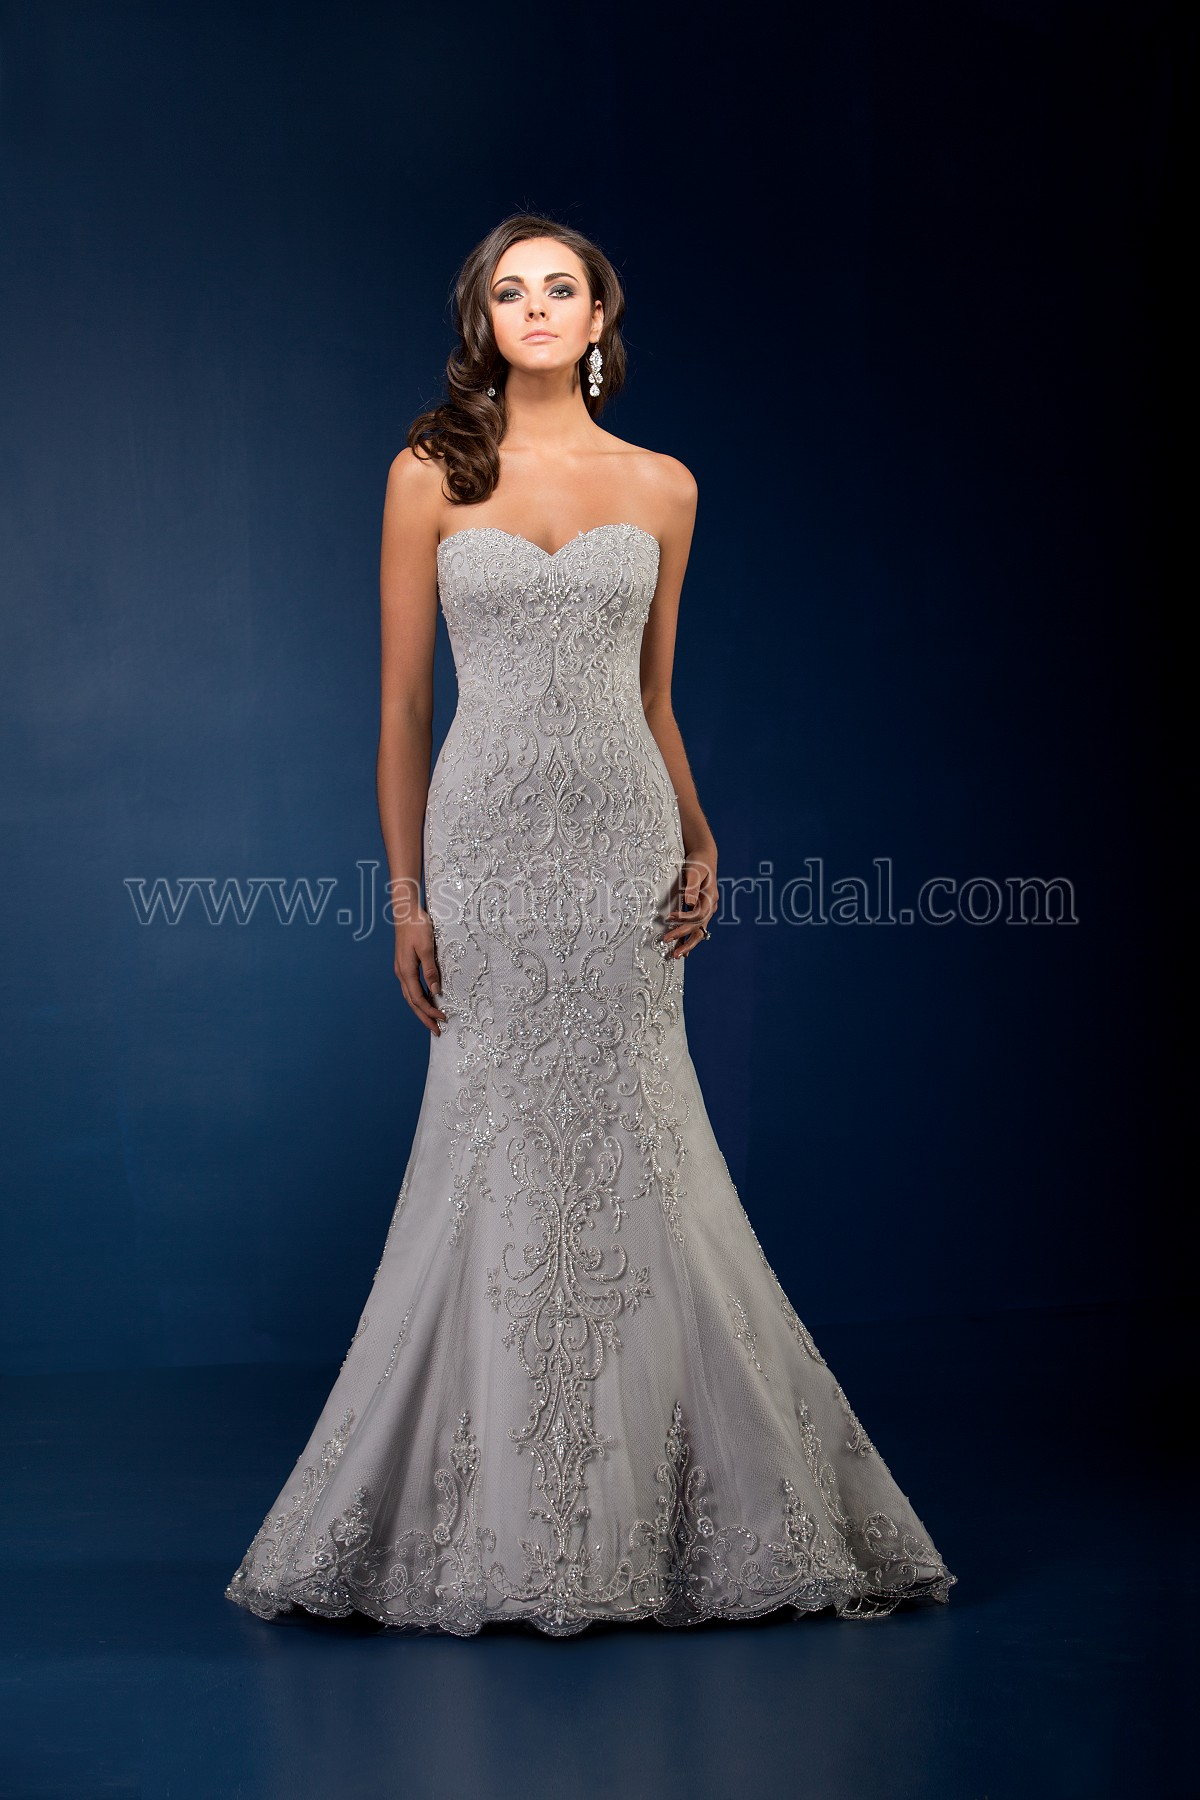 T162061 Sweetheart Strapless Netting Wedding Dress With Beading